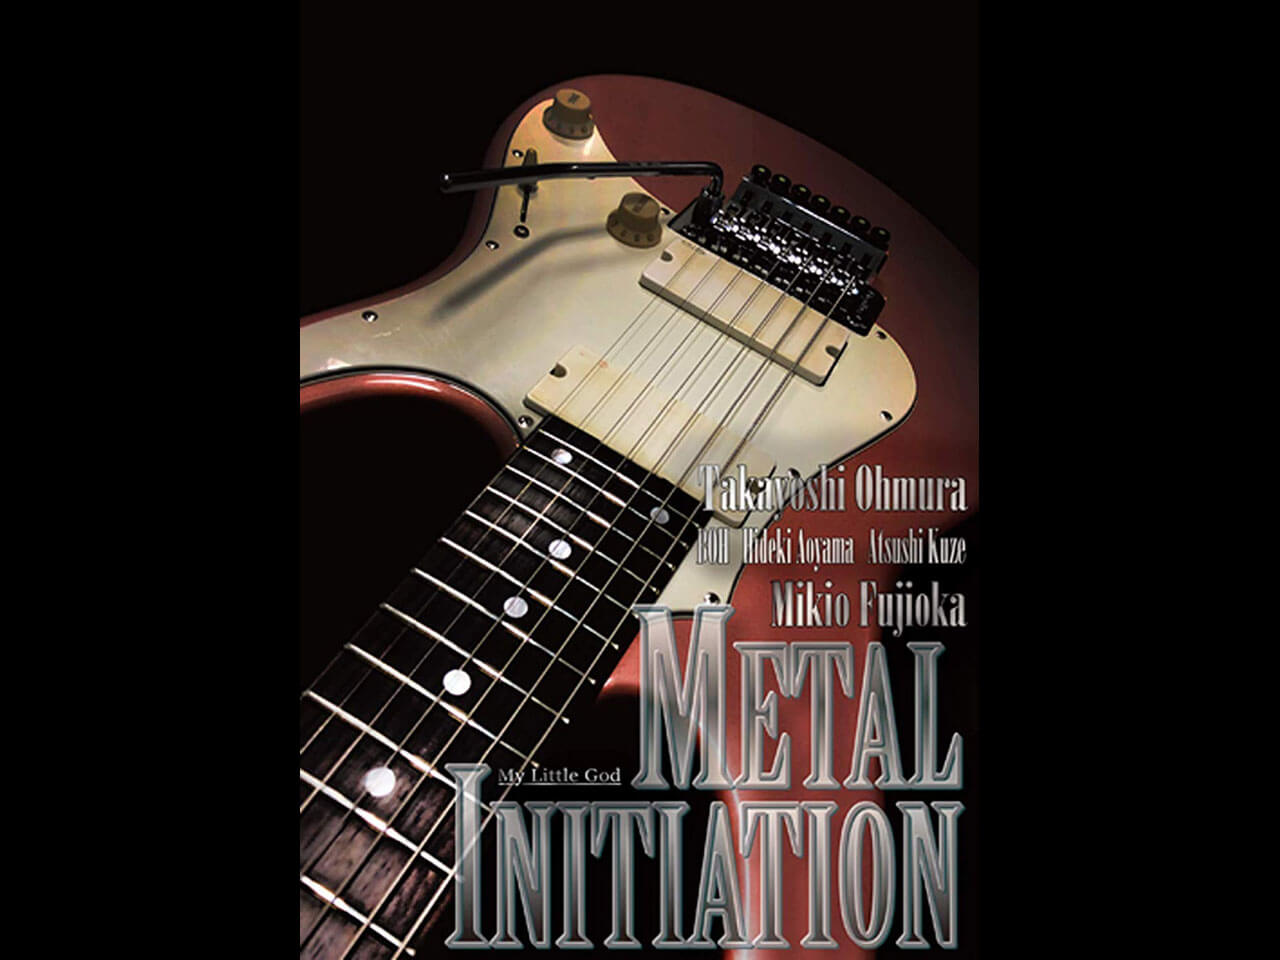 【DVD】METAL INITIATION